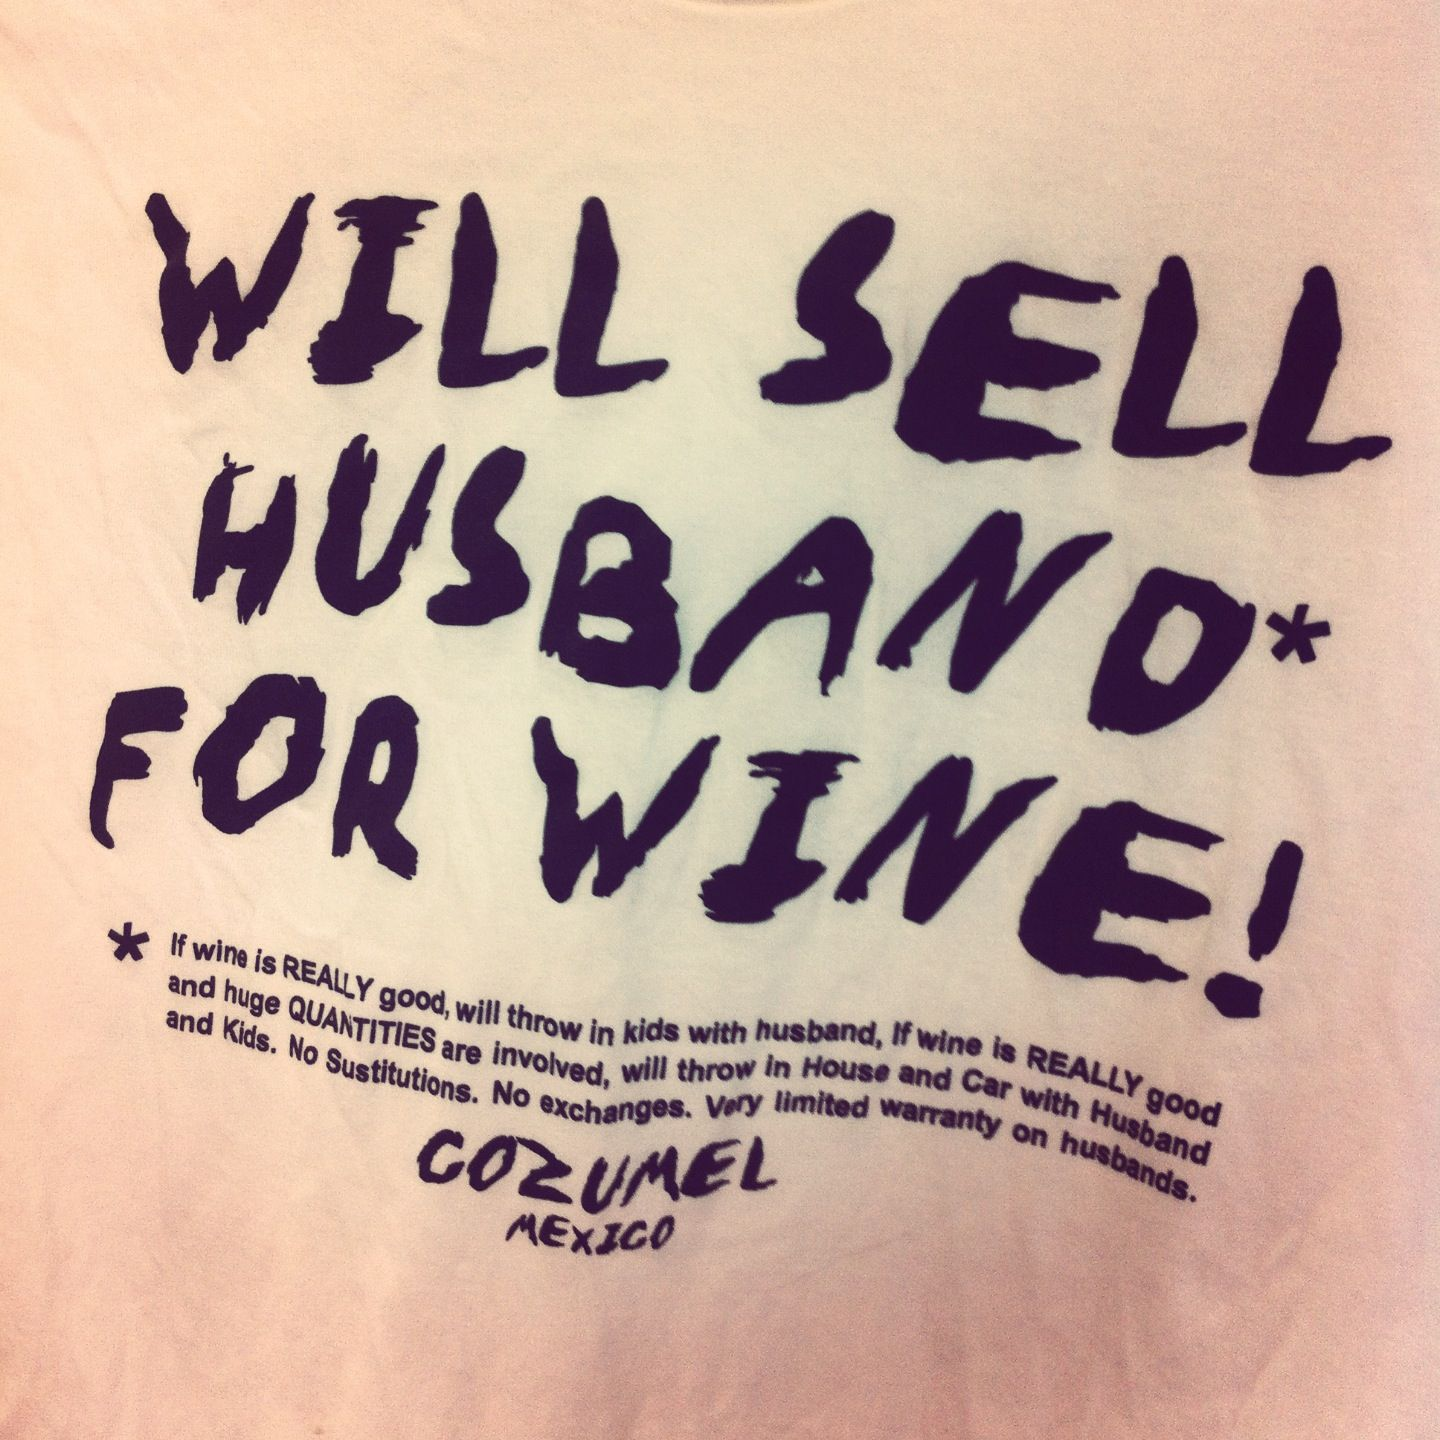 Funny husband quote found on a Tshirt in a Good Will store